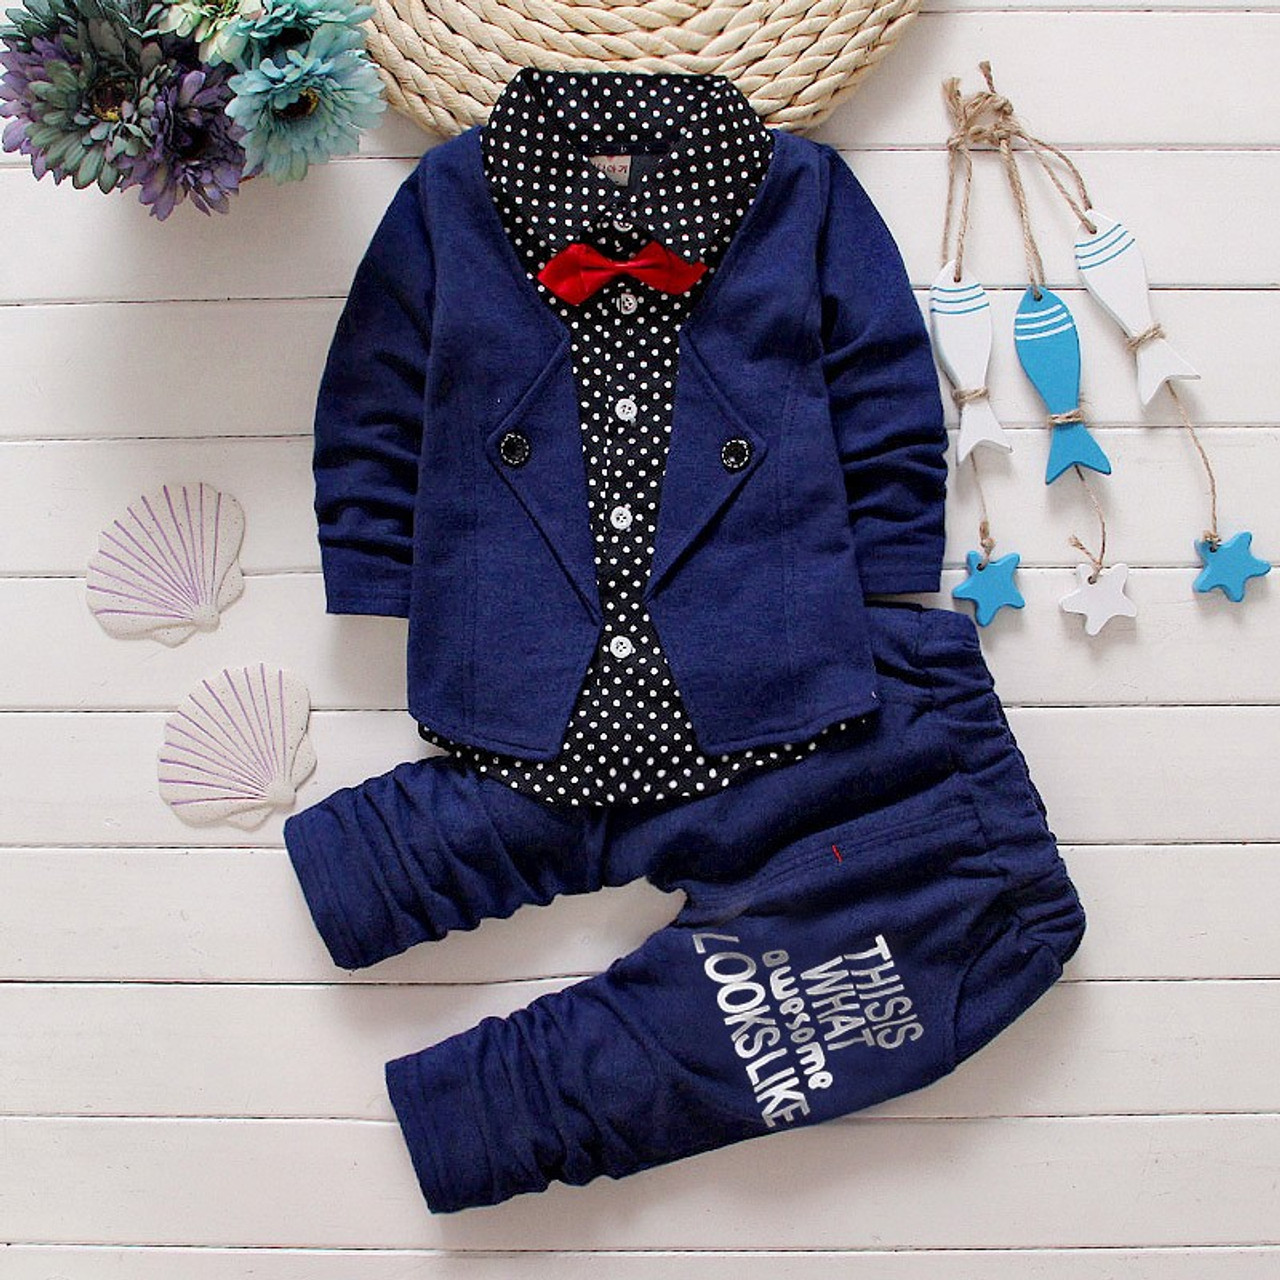 c88a2403ae91 BibiCola Spring Autumn Baby Boys Clothing Set Casual Kids Sport suit ...